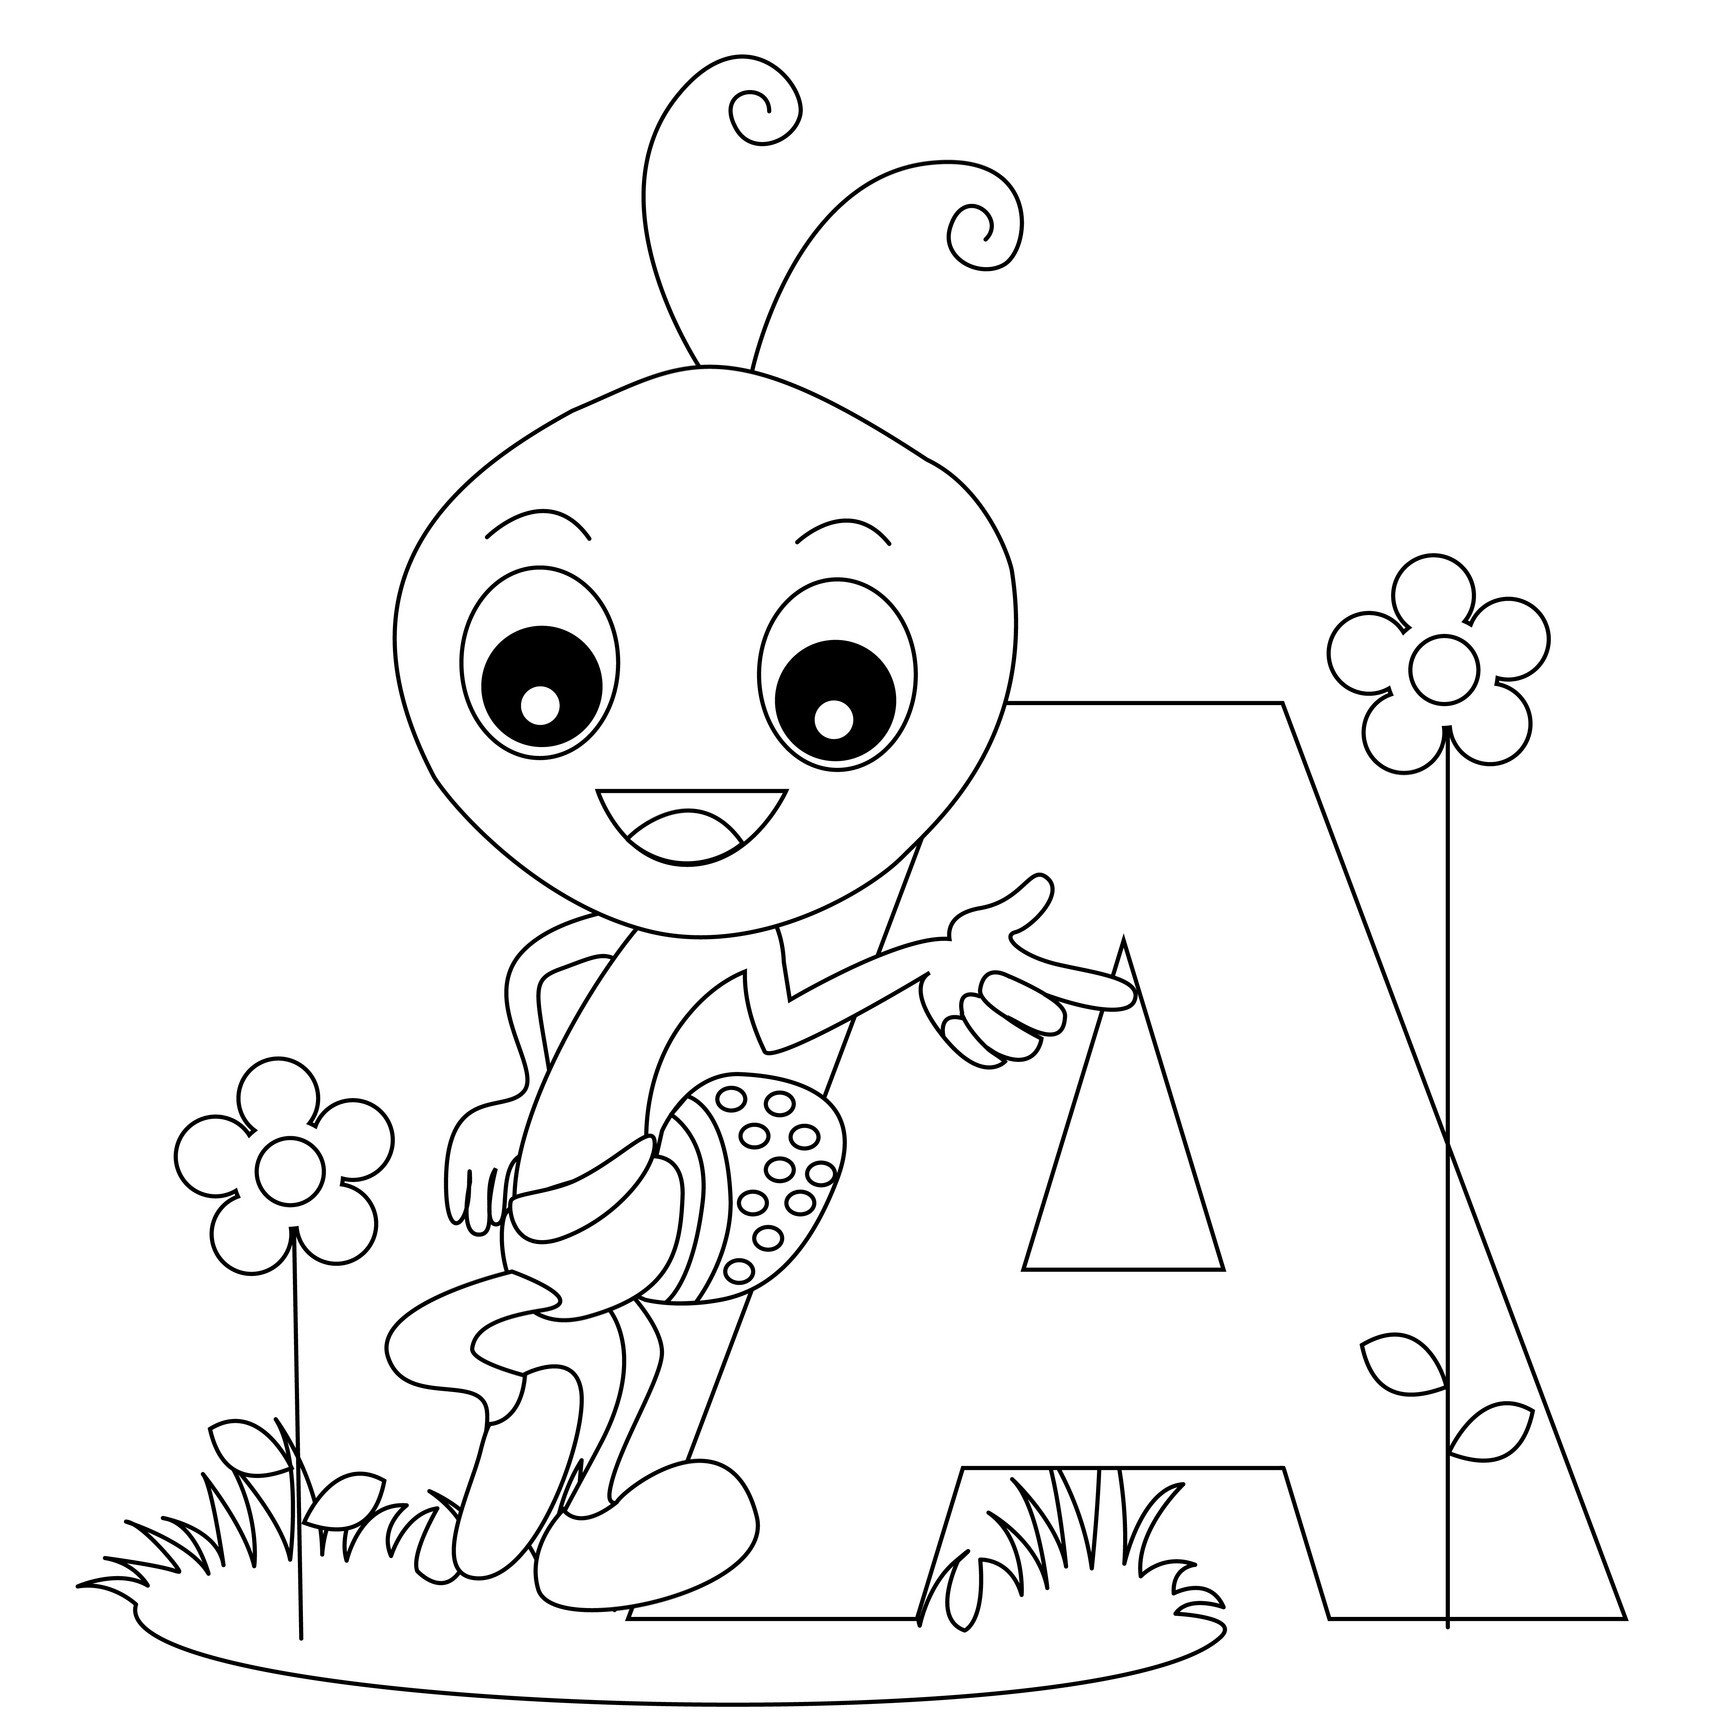 Printable Cartoon Worksheets : Free printable alphabet coloring pages for kids best